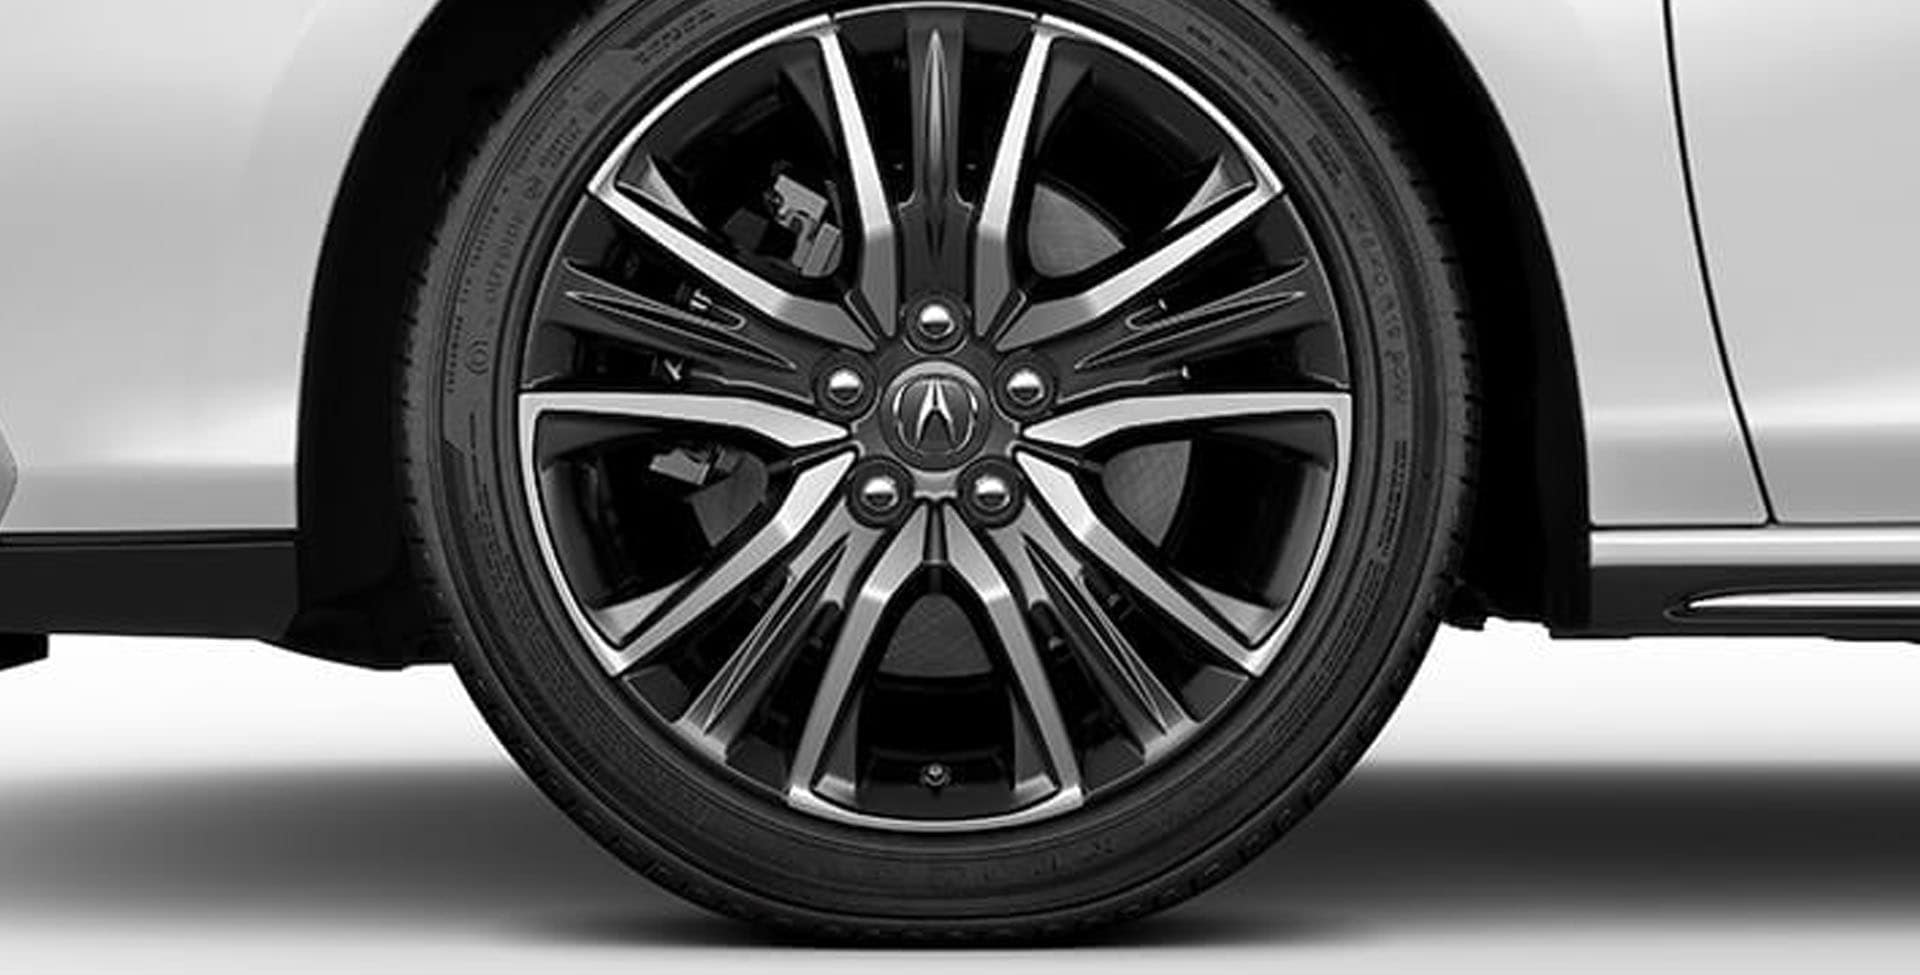 Acura RLX 19-in alloy wheels